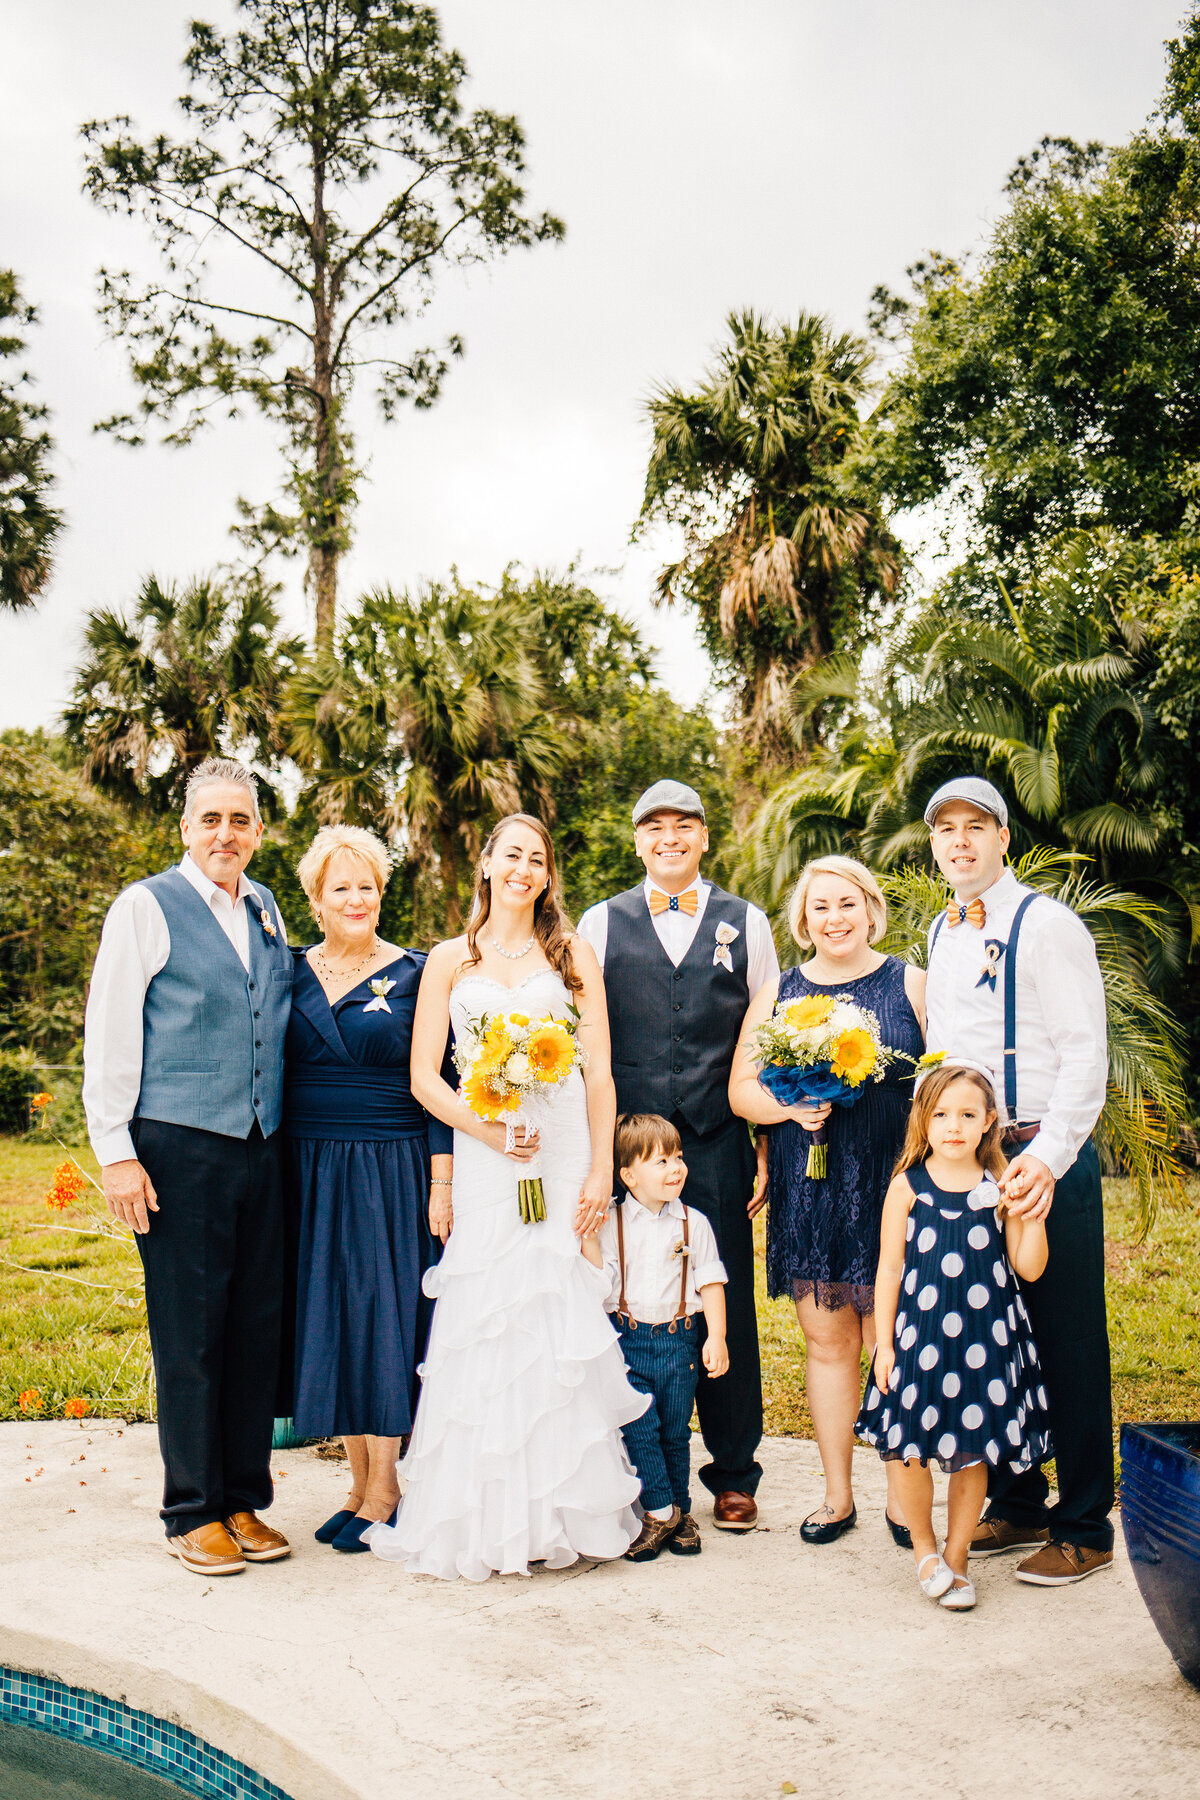 Kimberly_Hoyle_Photography_Marrero_Millikens_Reef_Wedding-25